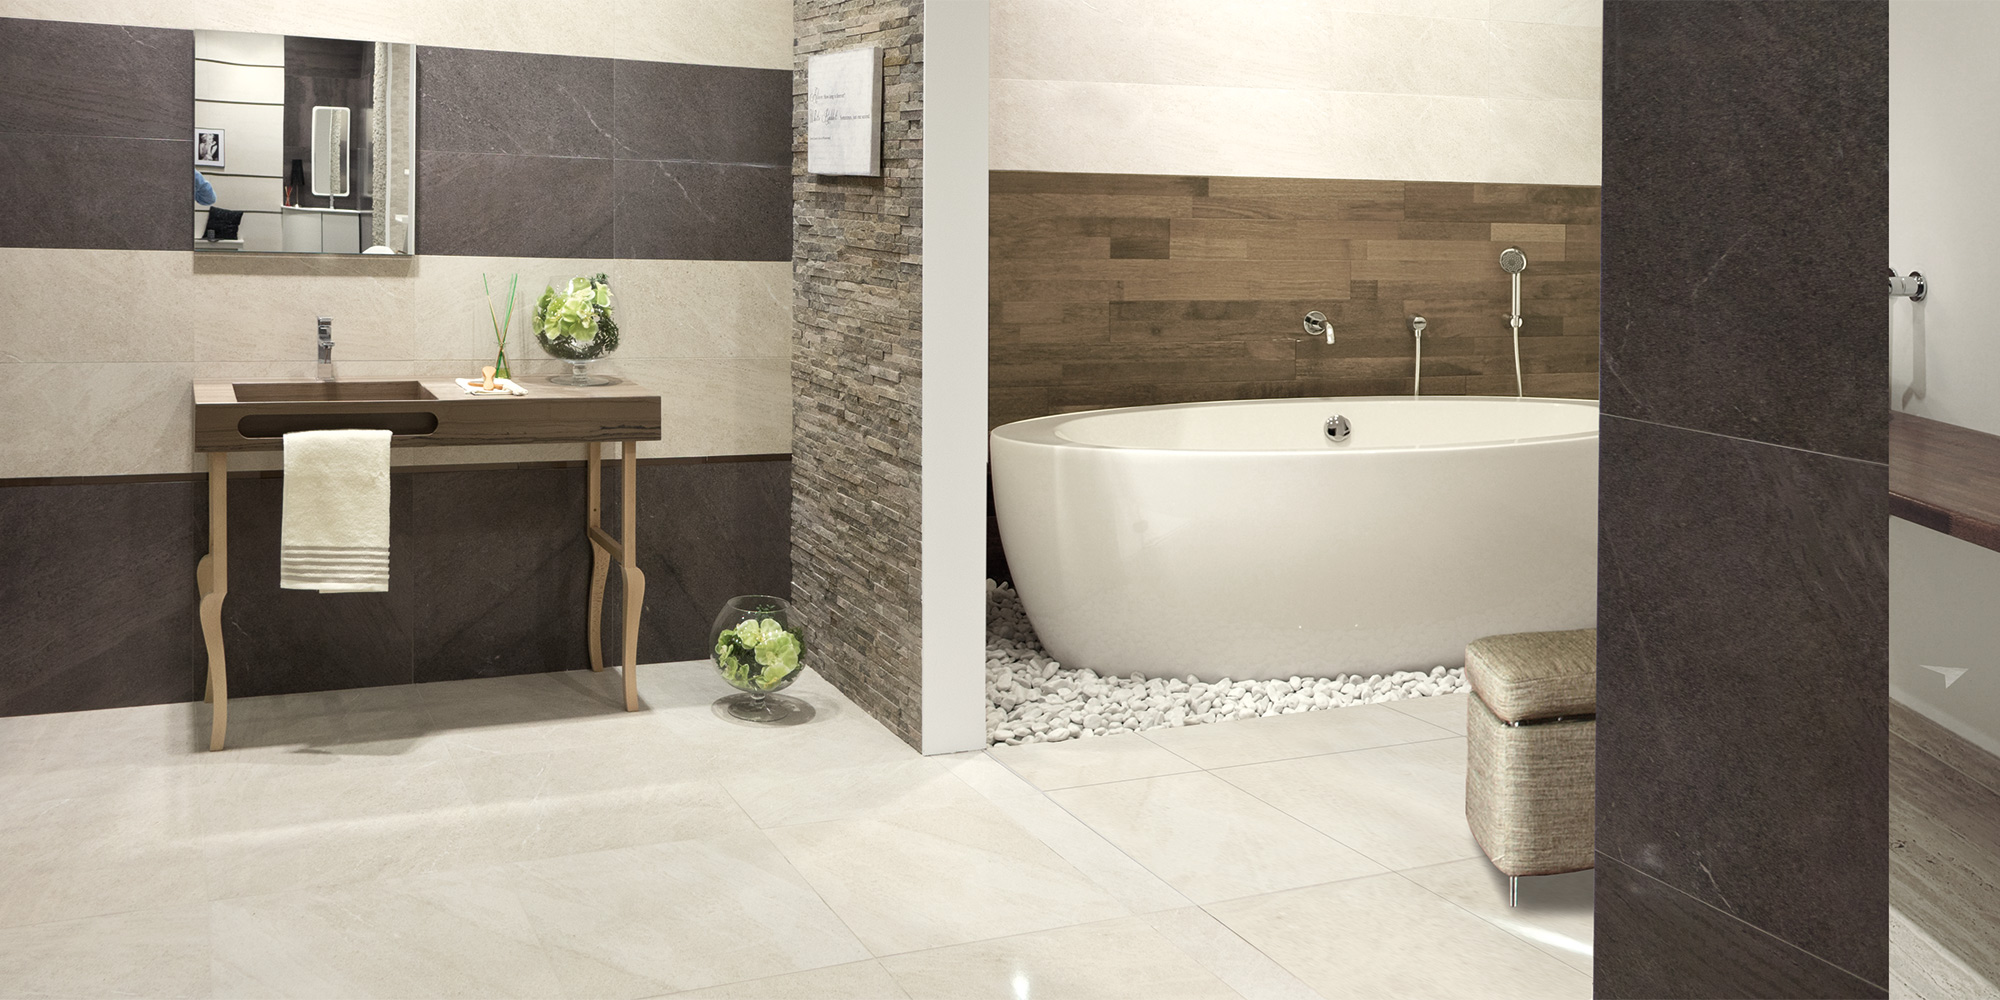 Brooklyn Lux 60x60. Semi-polished stone look budget porcelain tiles for walls and floors.